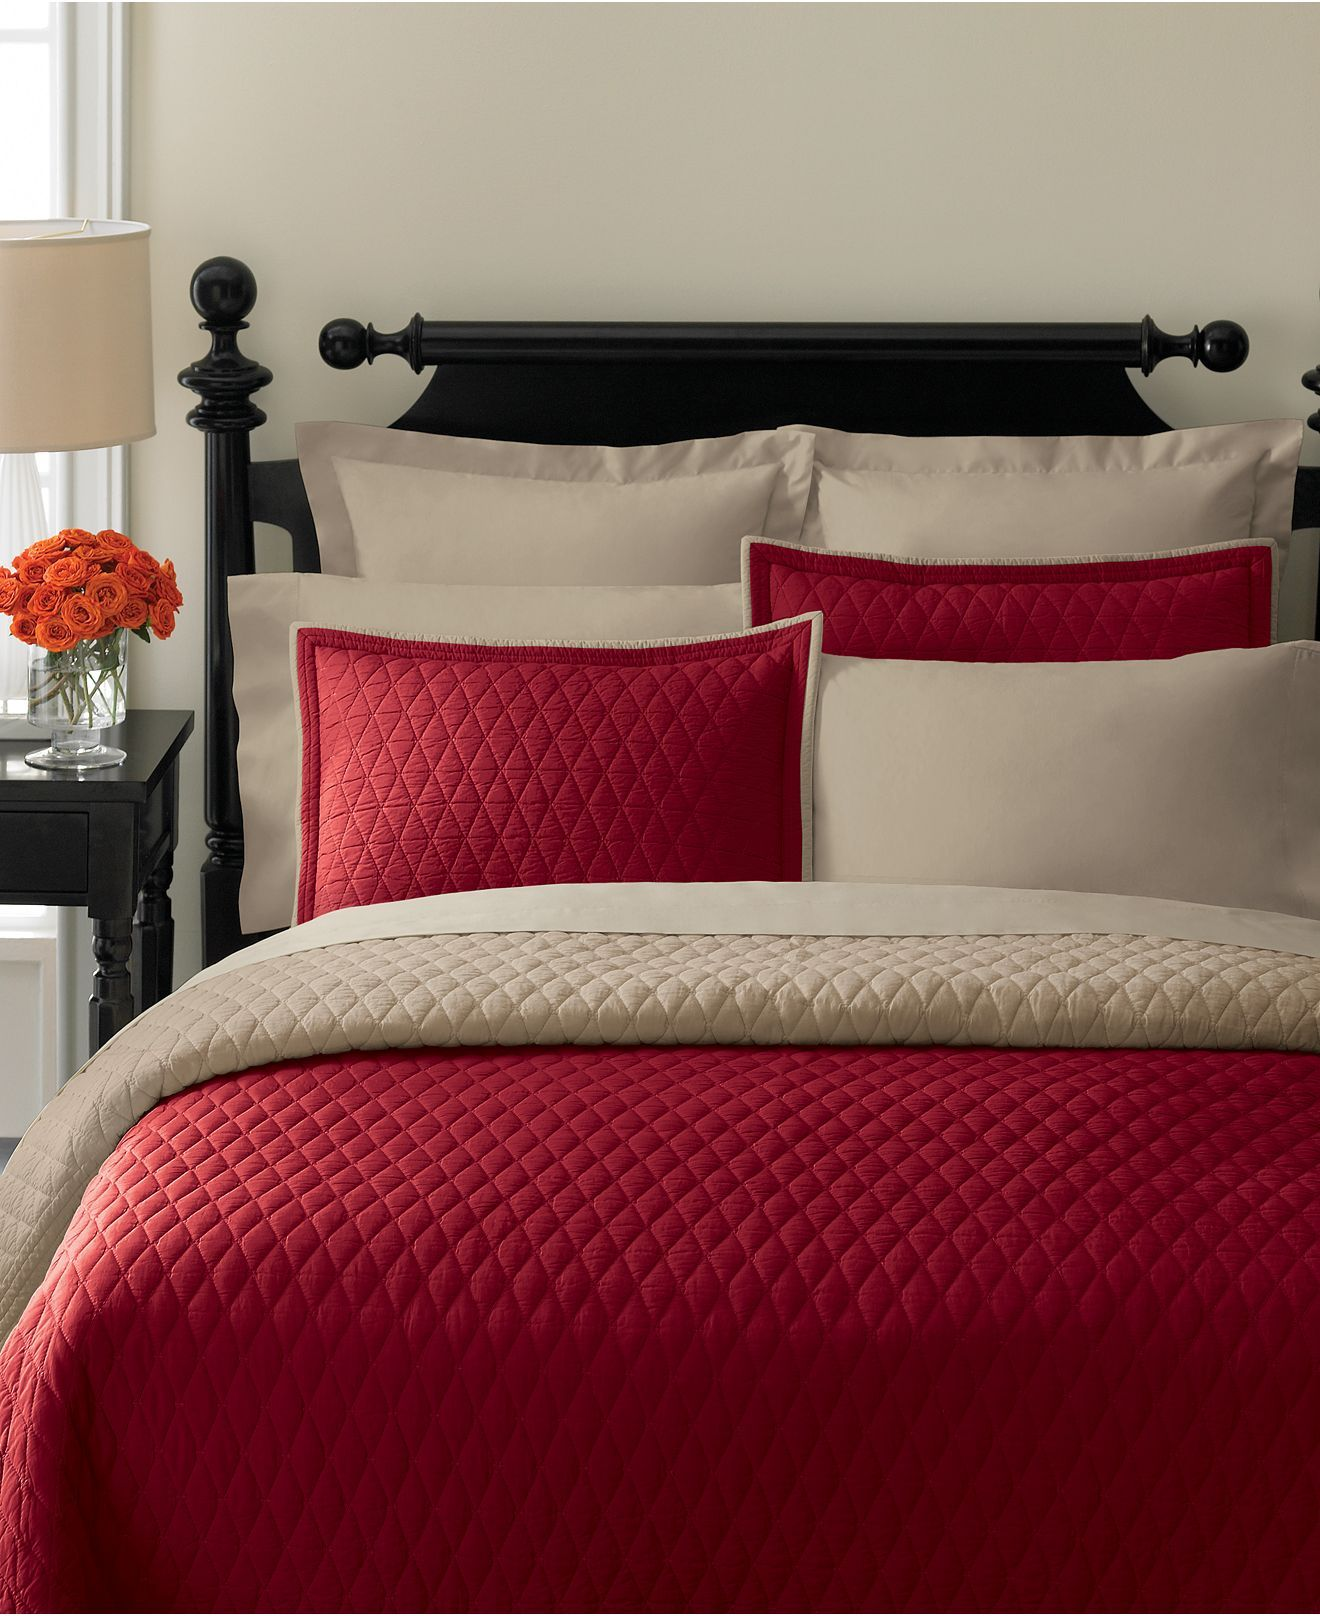 Martha Stewart Collection Bedding, Solid Diamond Quilts - Red ... : solid quilt bedding - Adamdwight.com